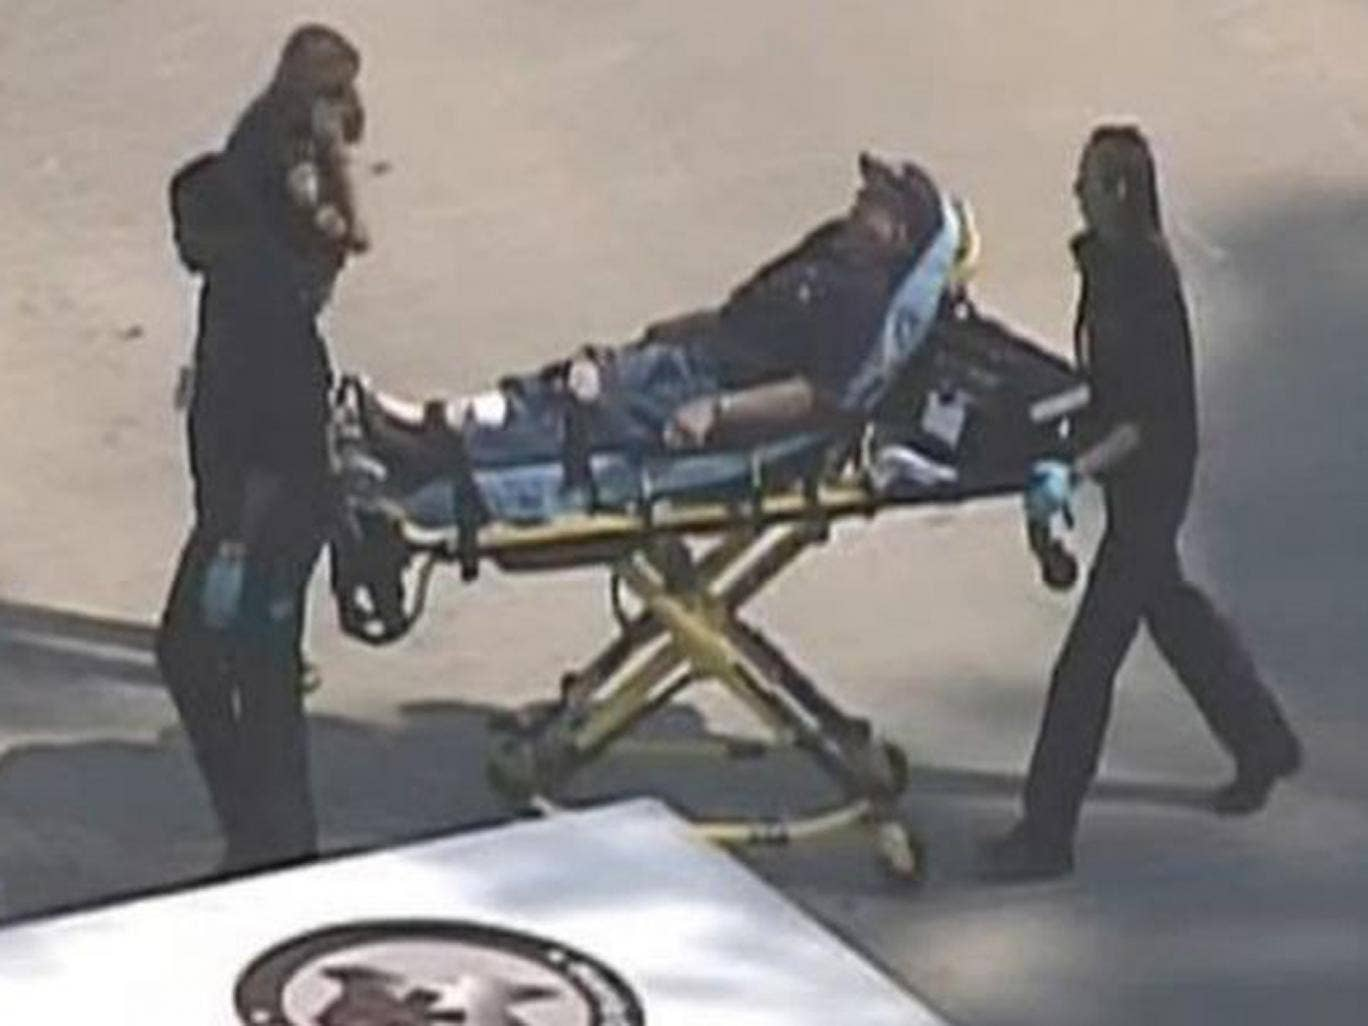 Police and emergency personnel evacuate an injured male on a stretcher outside a building on the Lone Star College Campus